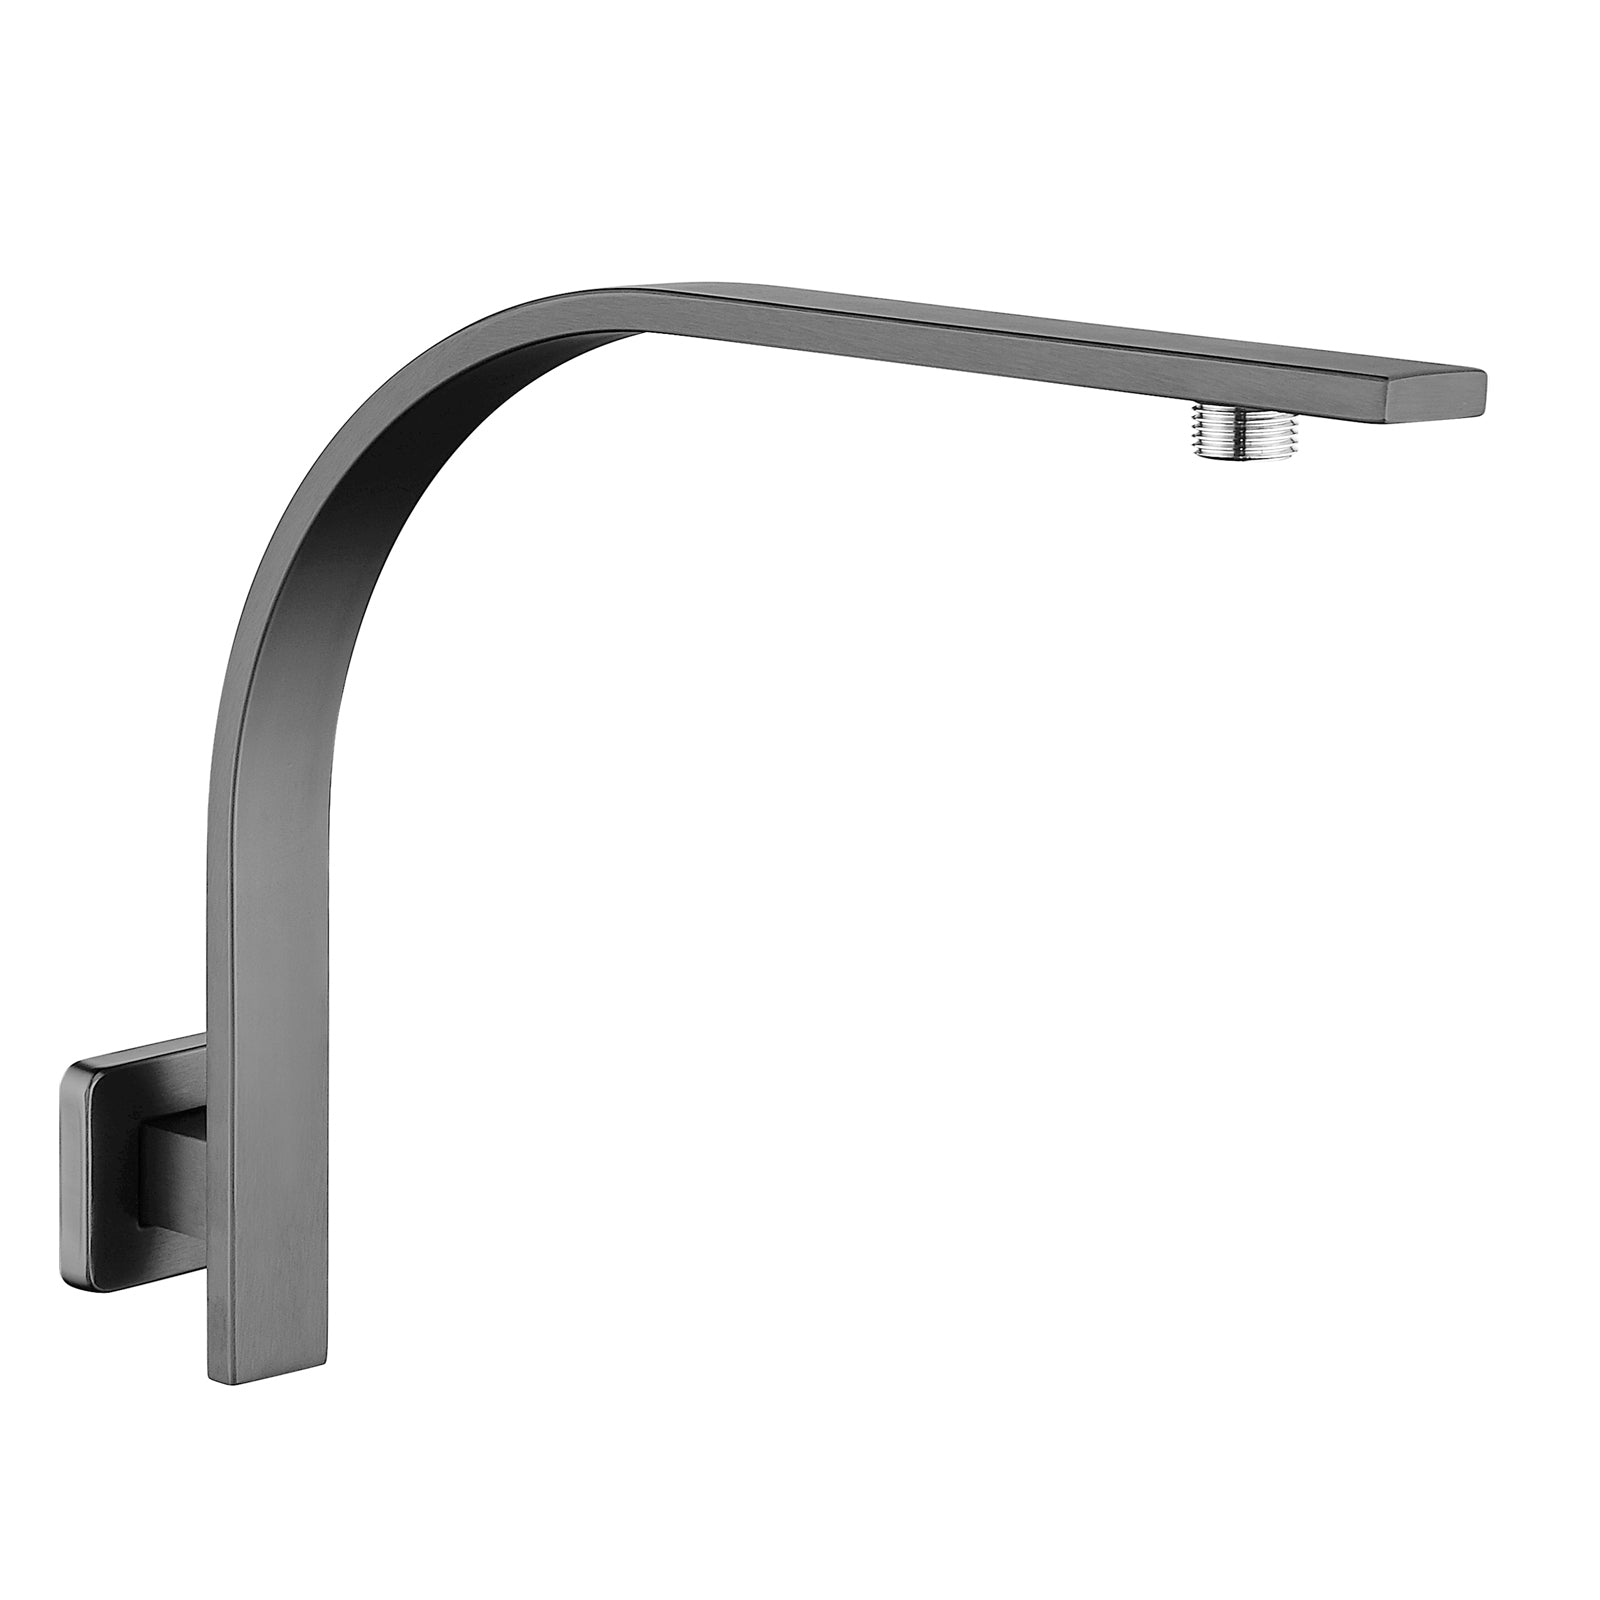 Norico Cavallo Gun Metal Grey Gooseneck Wall Mounted Shower Arm